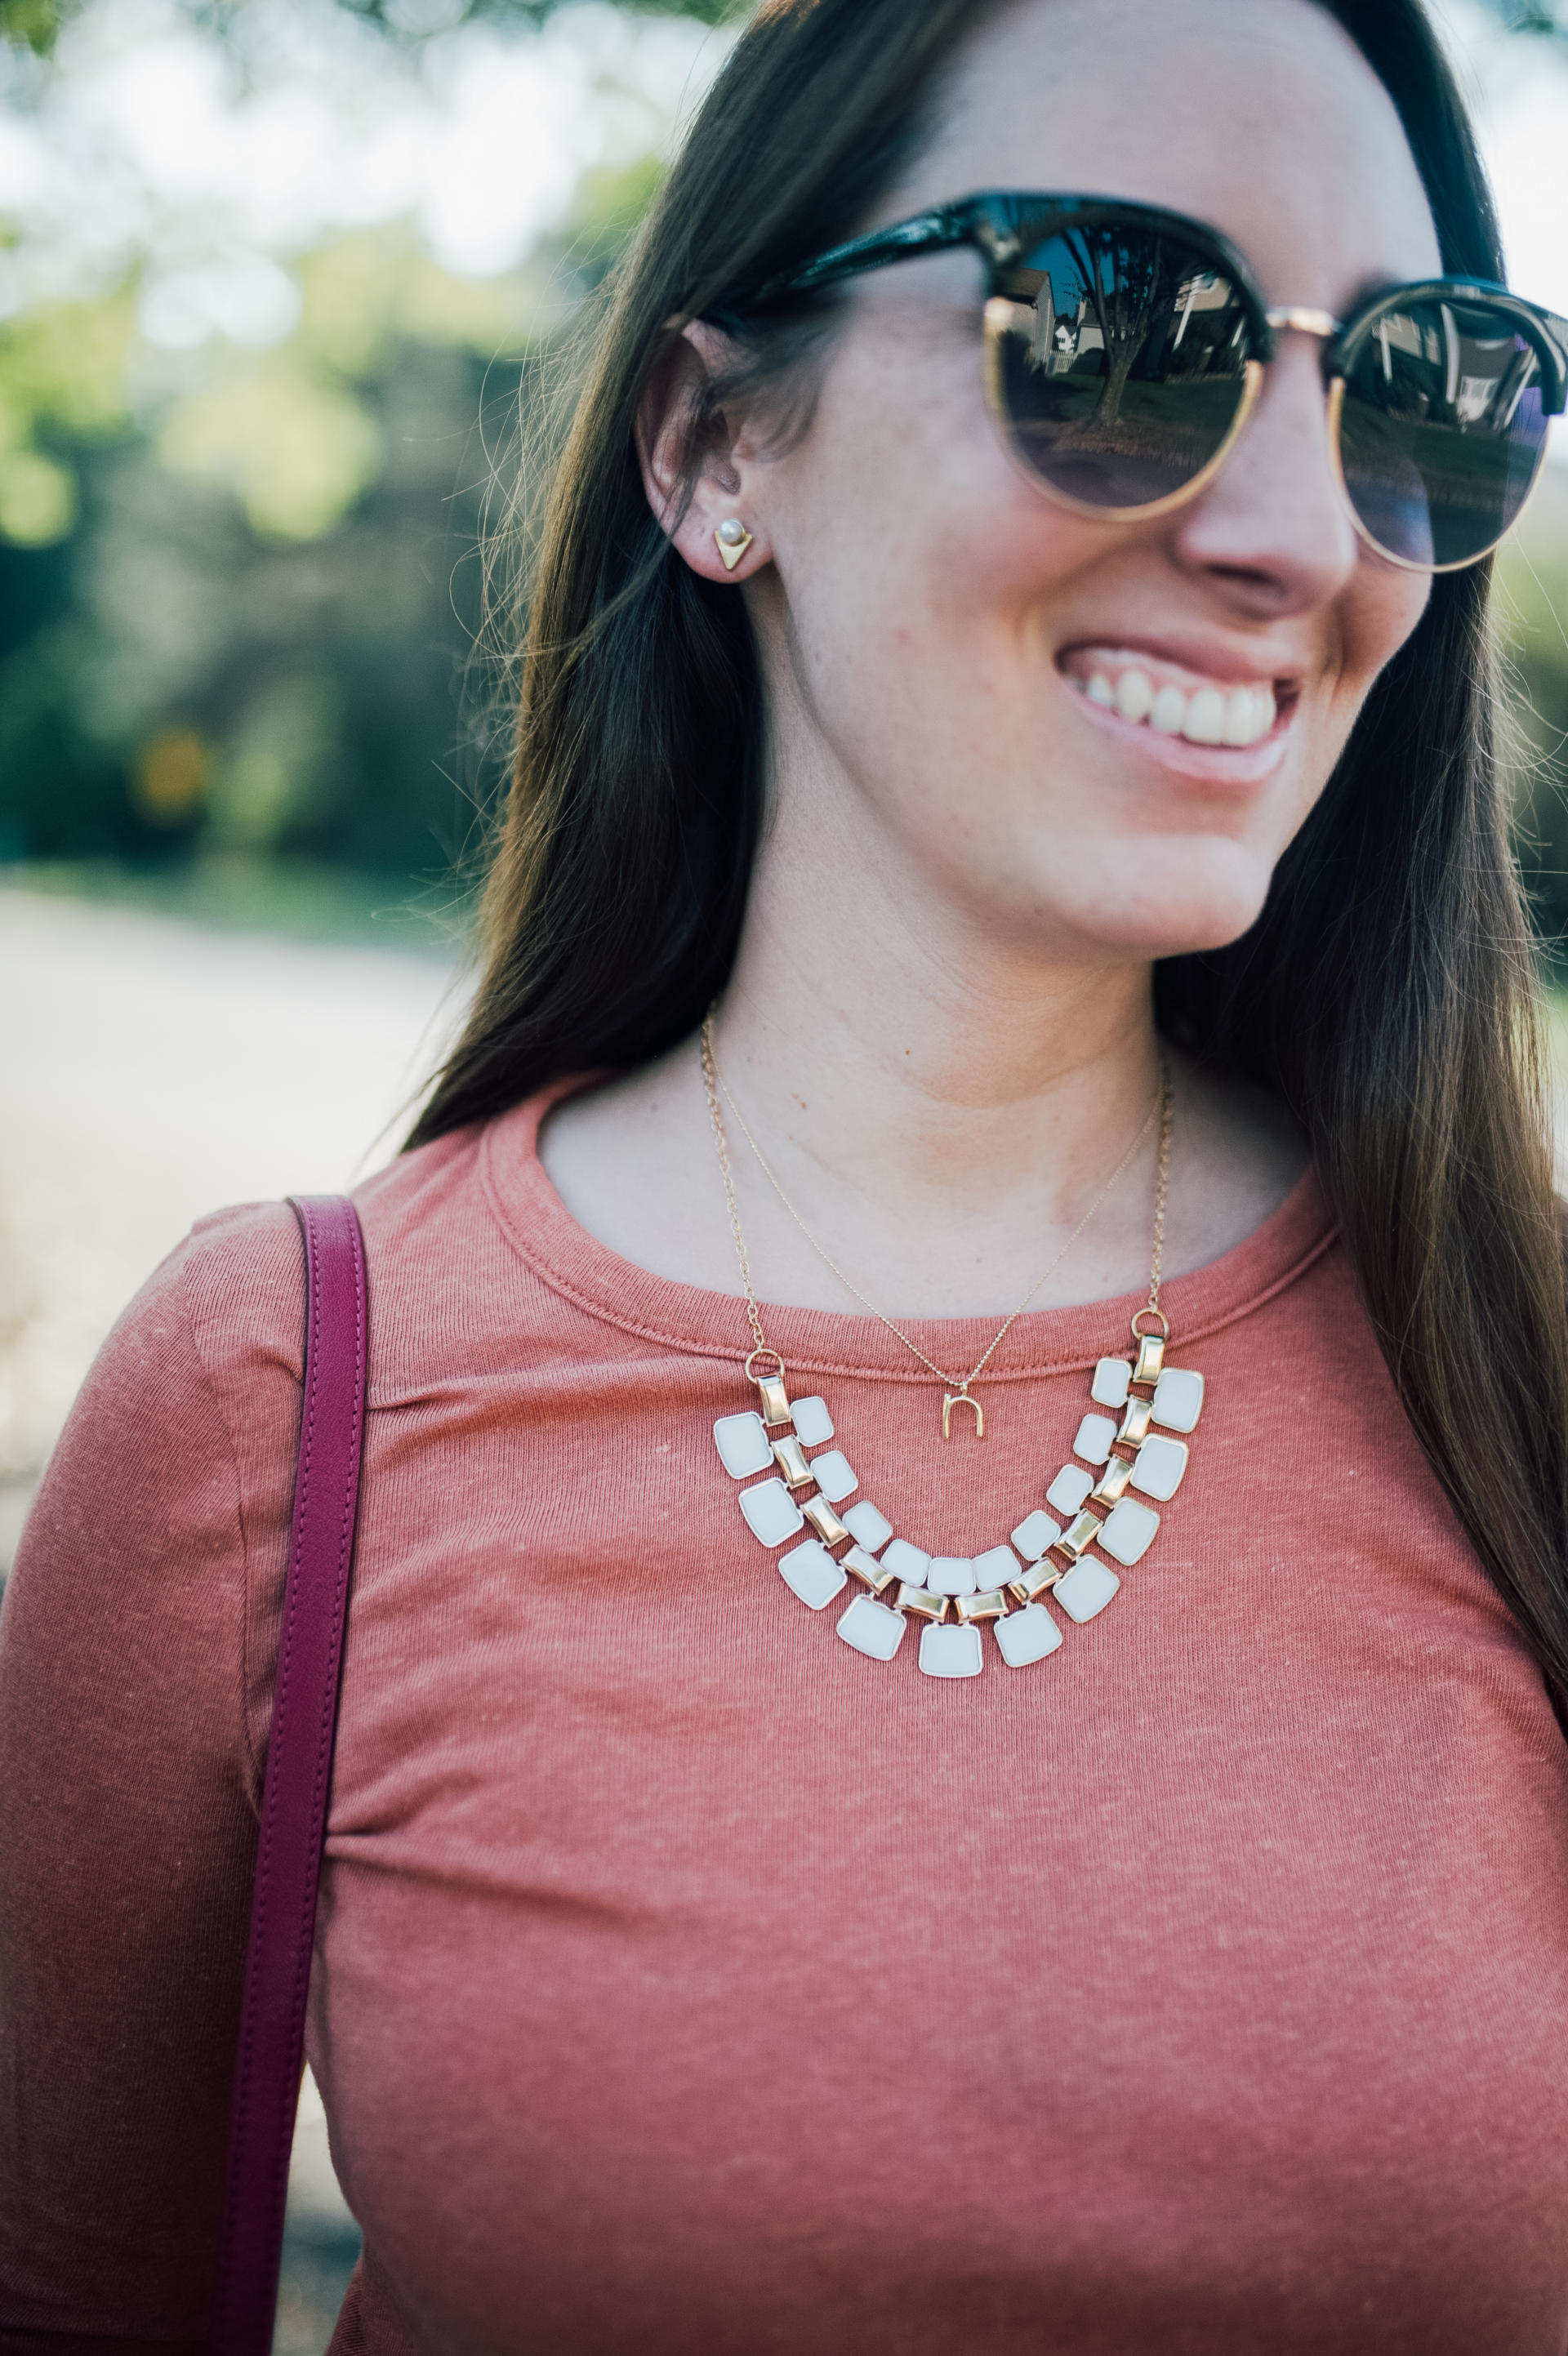 STYLE: Making a Statement with 7 Charming Sisters' Statement Jewelry by New Jersey style blogger What's For Dinner Esq.